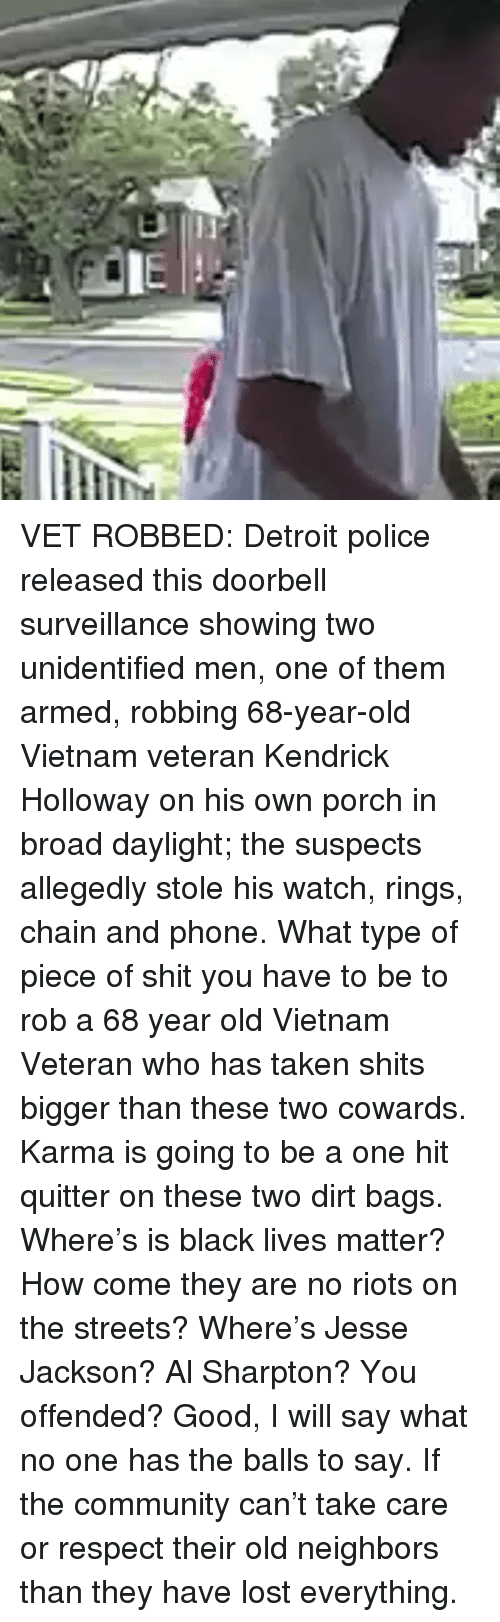 Al Sharpton: VET ROBBED: Detroit police released this doorbell surveillance showing two unidentified men, one of them armed, robbing 68-year-old Vietnam veteran Kendrick Holloway on his own porch in broad daylight; the suspects allegedly stole his watch, rings, chain and phone. What type of piece of shit you have to be to rob a 68 year old Vietnam Veteran who has taken shits bigger than these two cowards. Karma is going to be a one hit quitter on these two dirt bags. Where's is black lives matter? How come they are no riots on the streets? Where's Jesse Jackson? Al Sharpton? You offended? Good, I will say what no one has the balls to say. If the community can't take care or respect their old neighbors than they have lost everything.